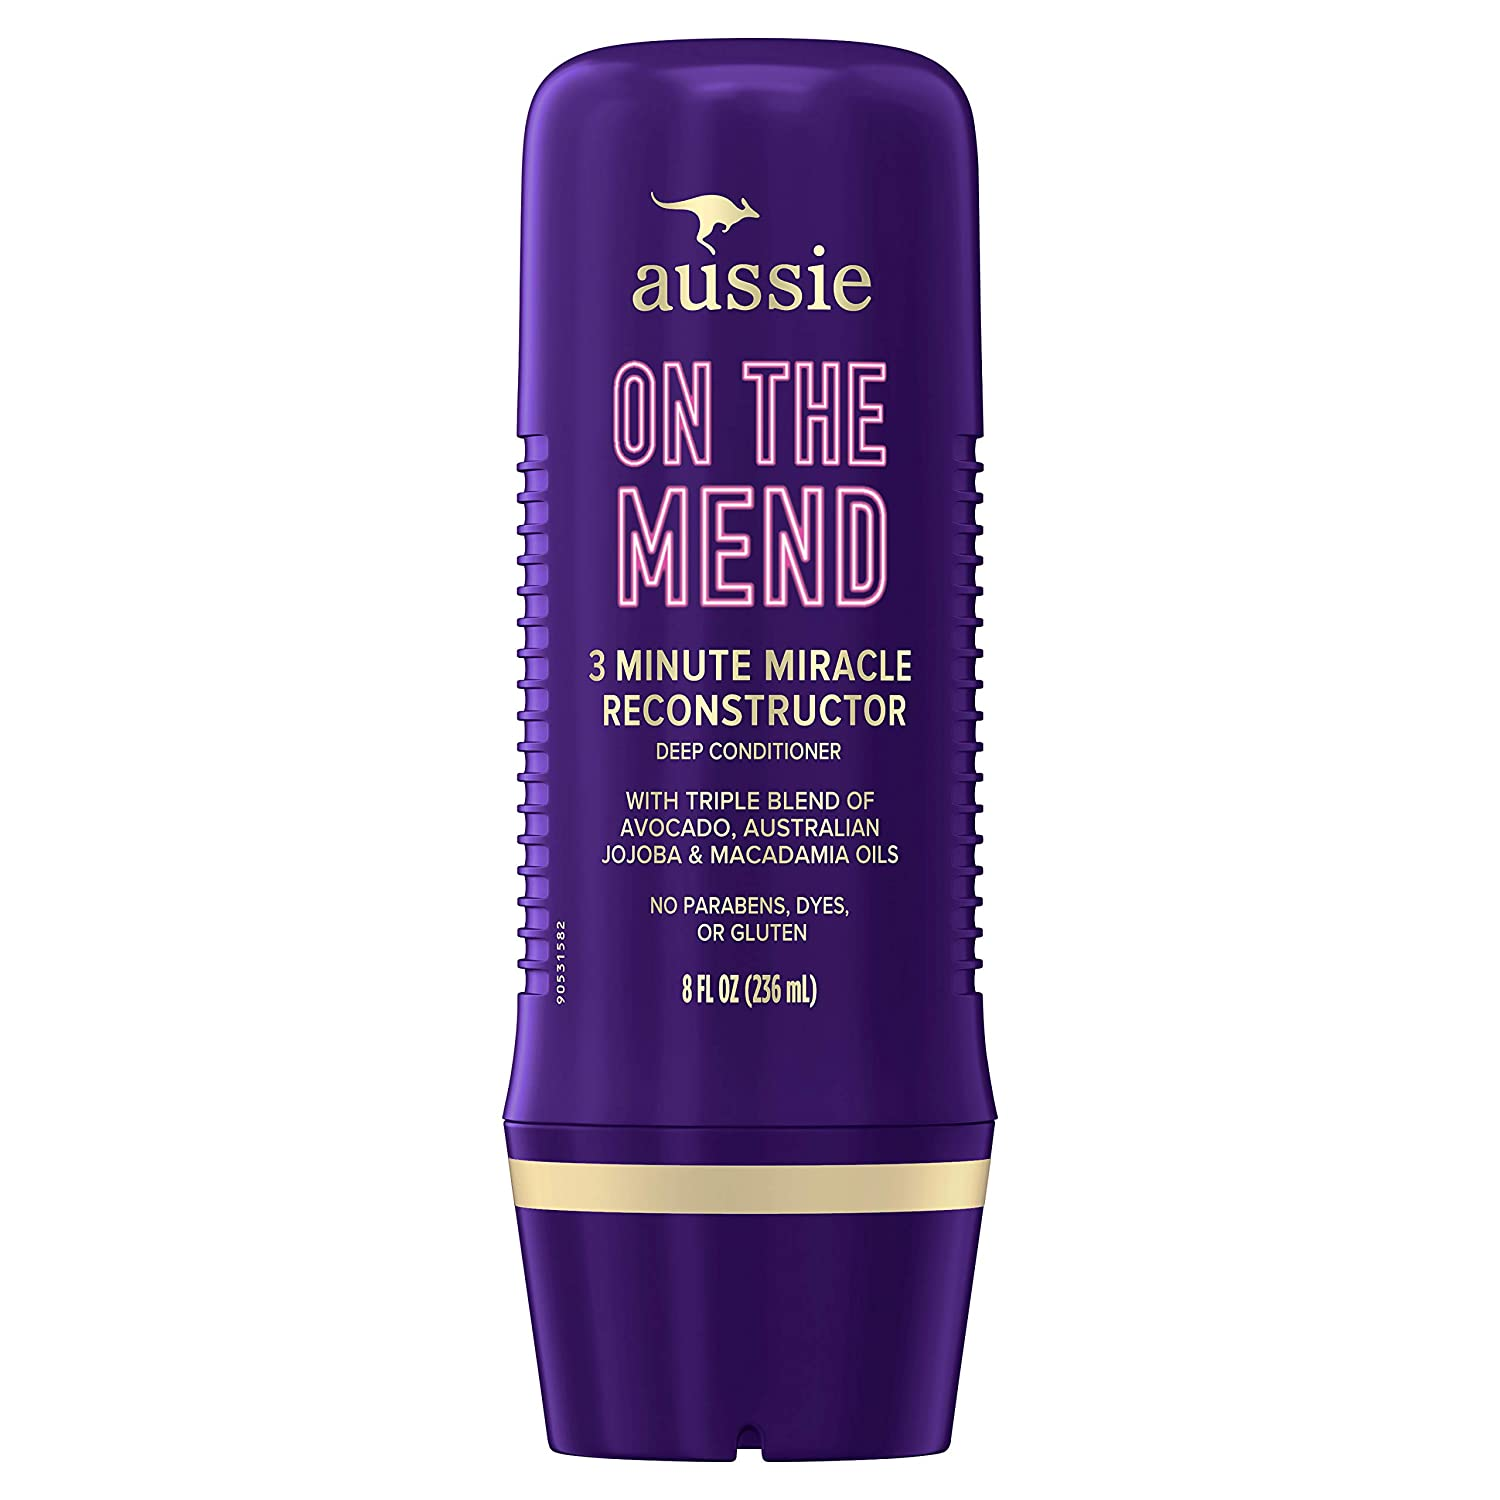 Aussie On The Mend 3 Minute Miracle Reconstructor Deep Conditioner, Triple Oil Blend of Avocado, Australian Jojoba and Macadamia Oils, Paraben & Dye Free, 8 Oz